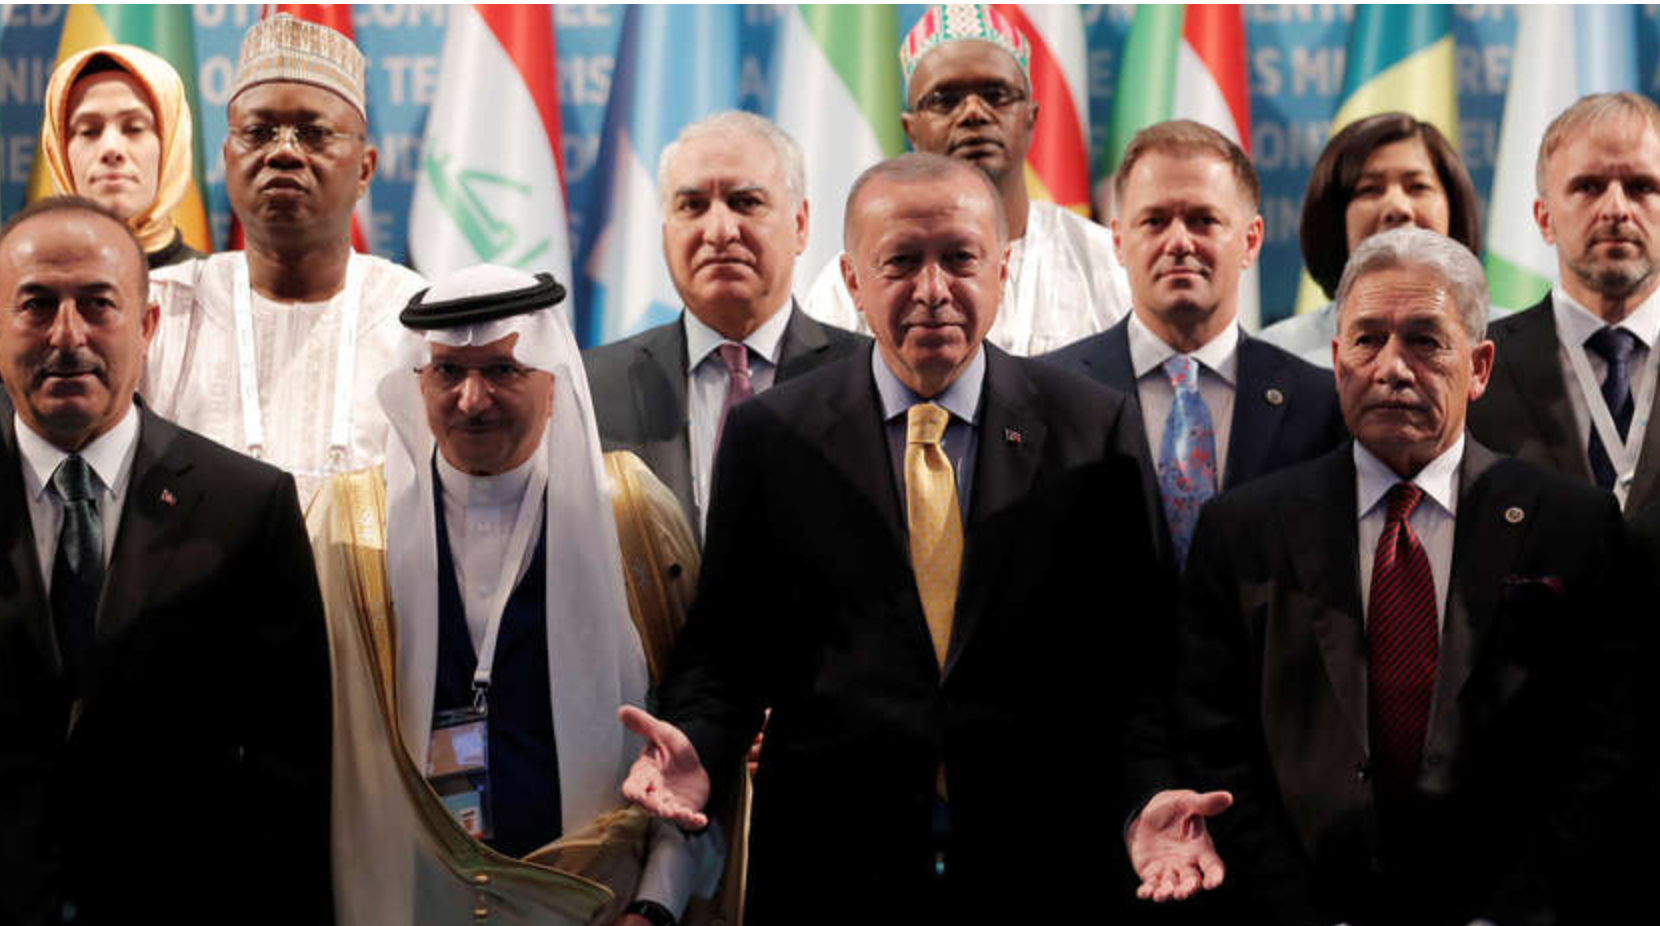 Intel: Why Turkey's transfer of Muslim bloc leadership to Saudis was so uncomfortable